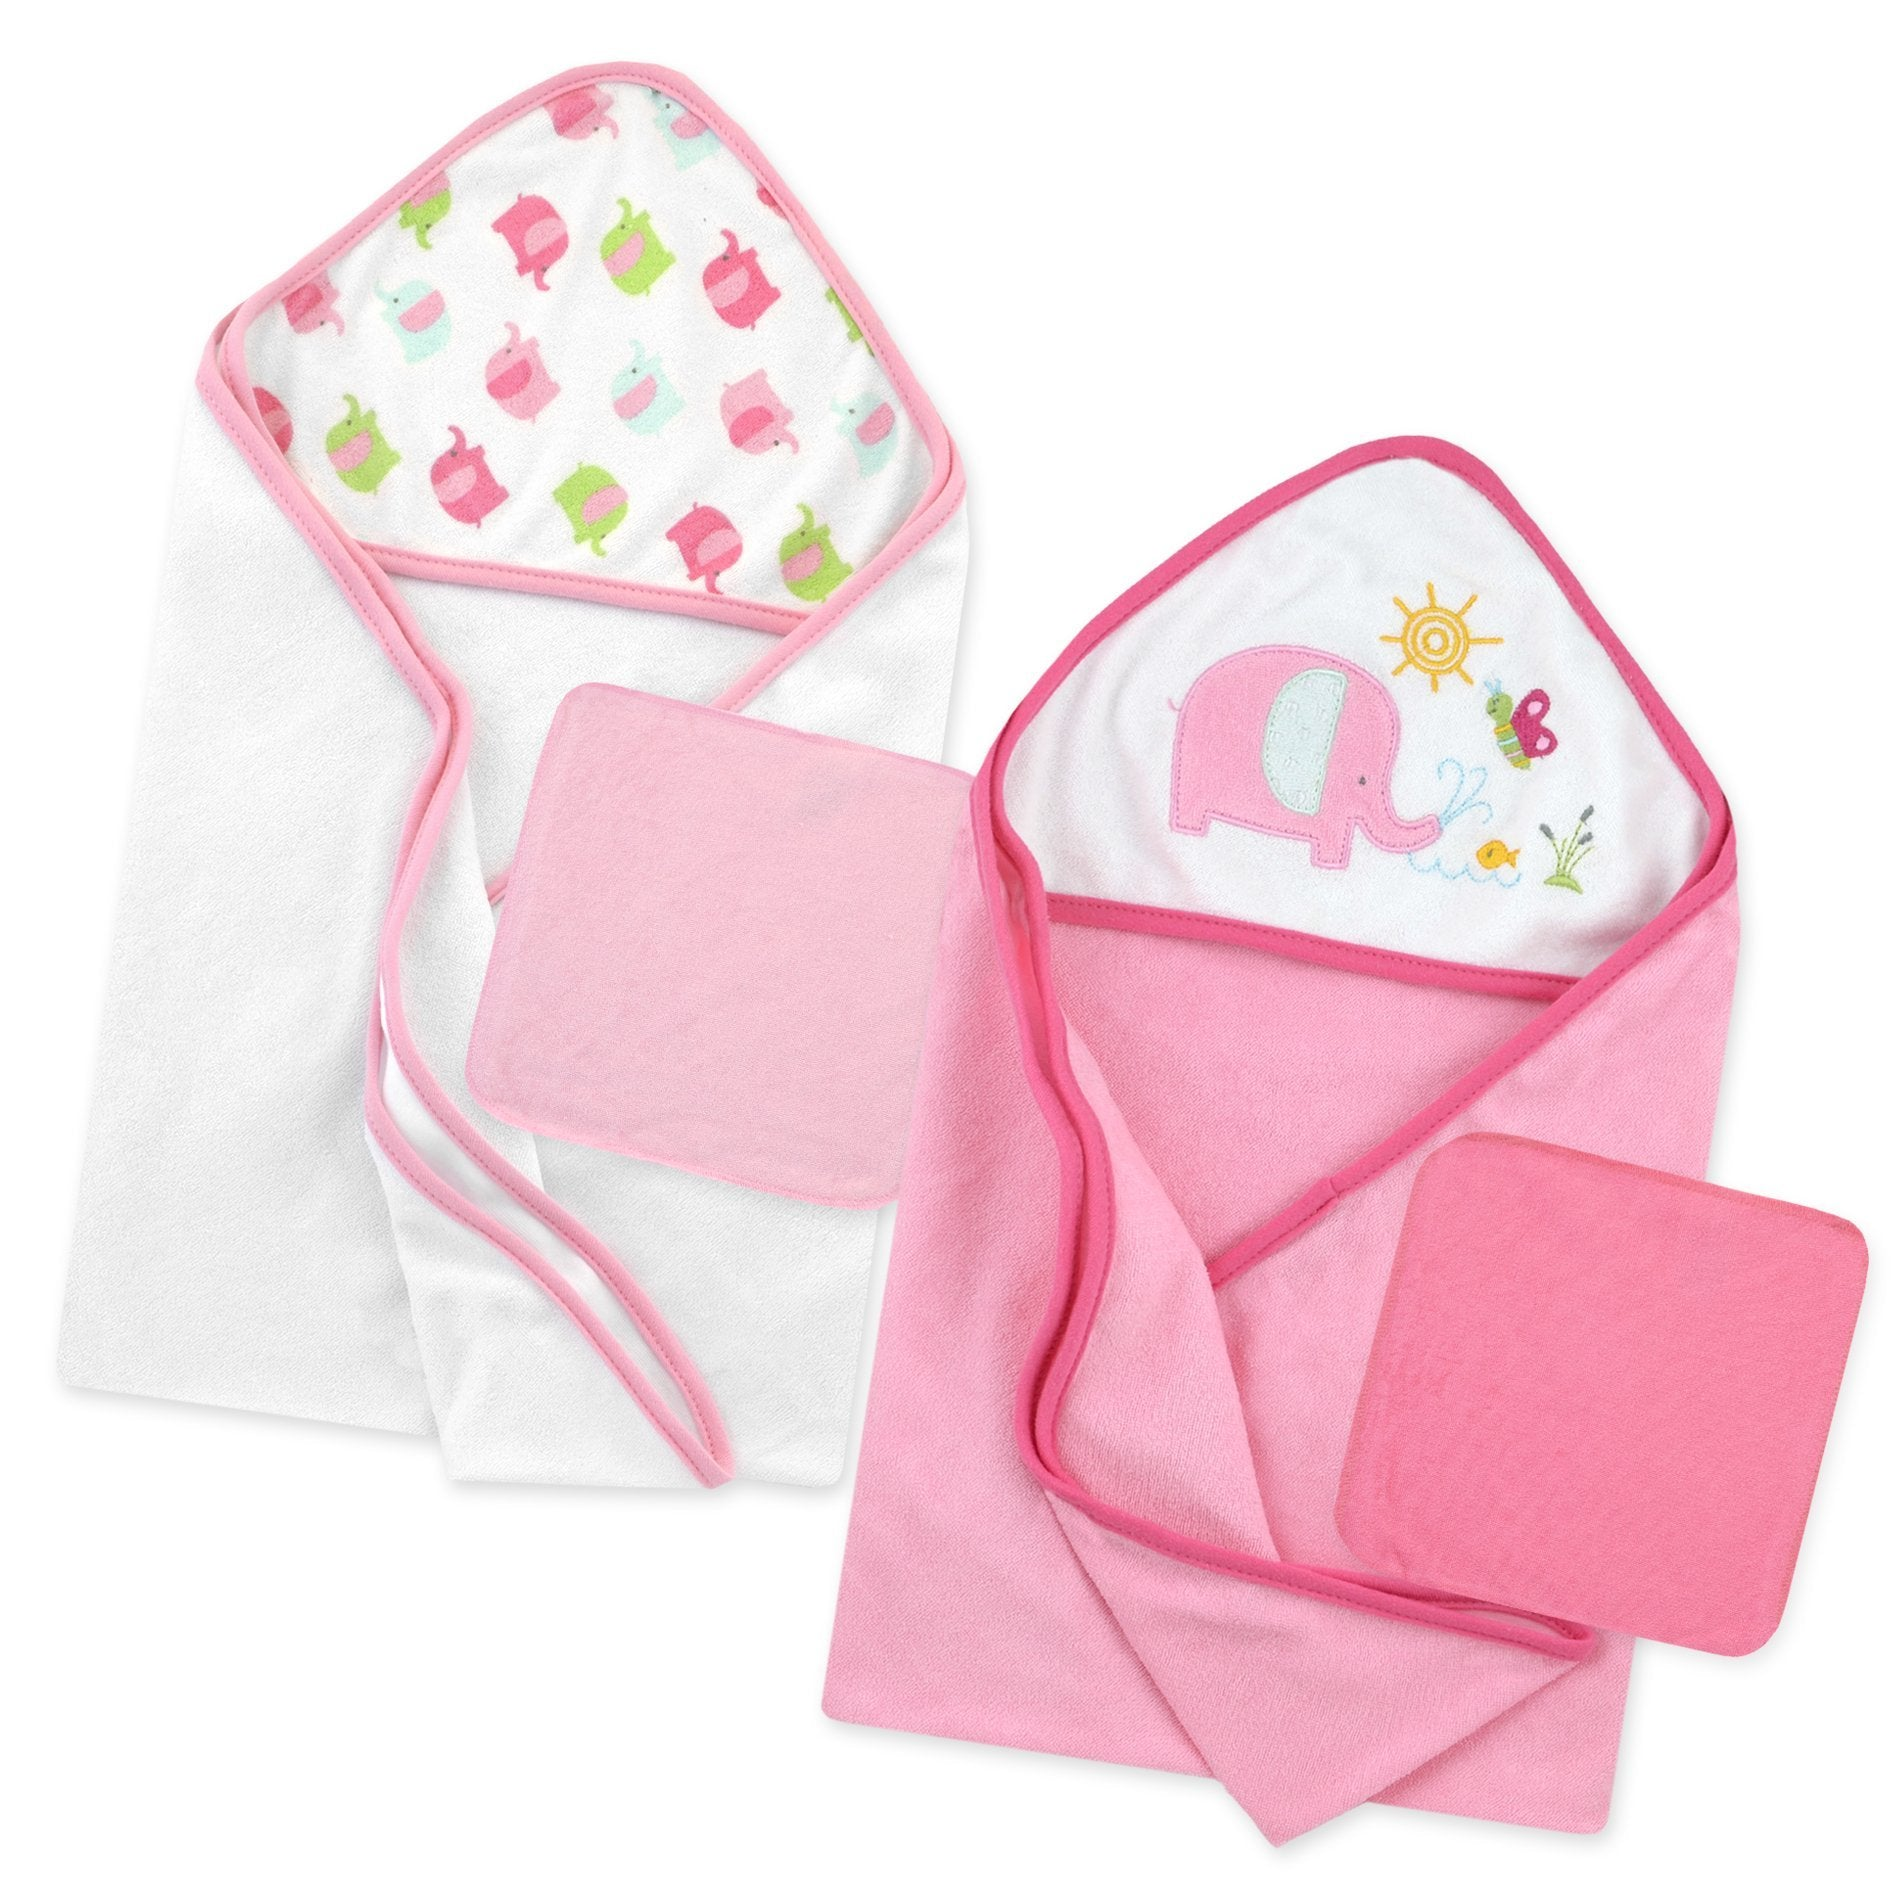 Just Born®Love to Bathe 4-Piece Hooded Towel & Washcloth Set-Gerber Childrenswear